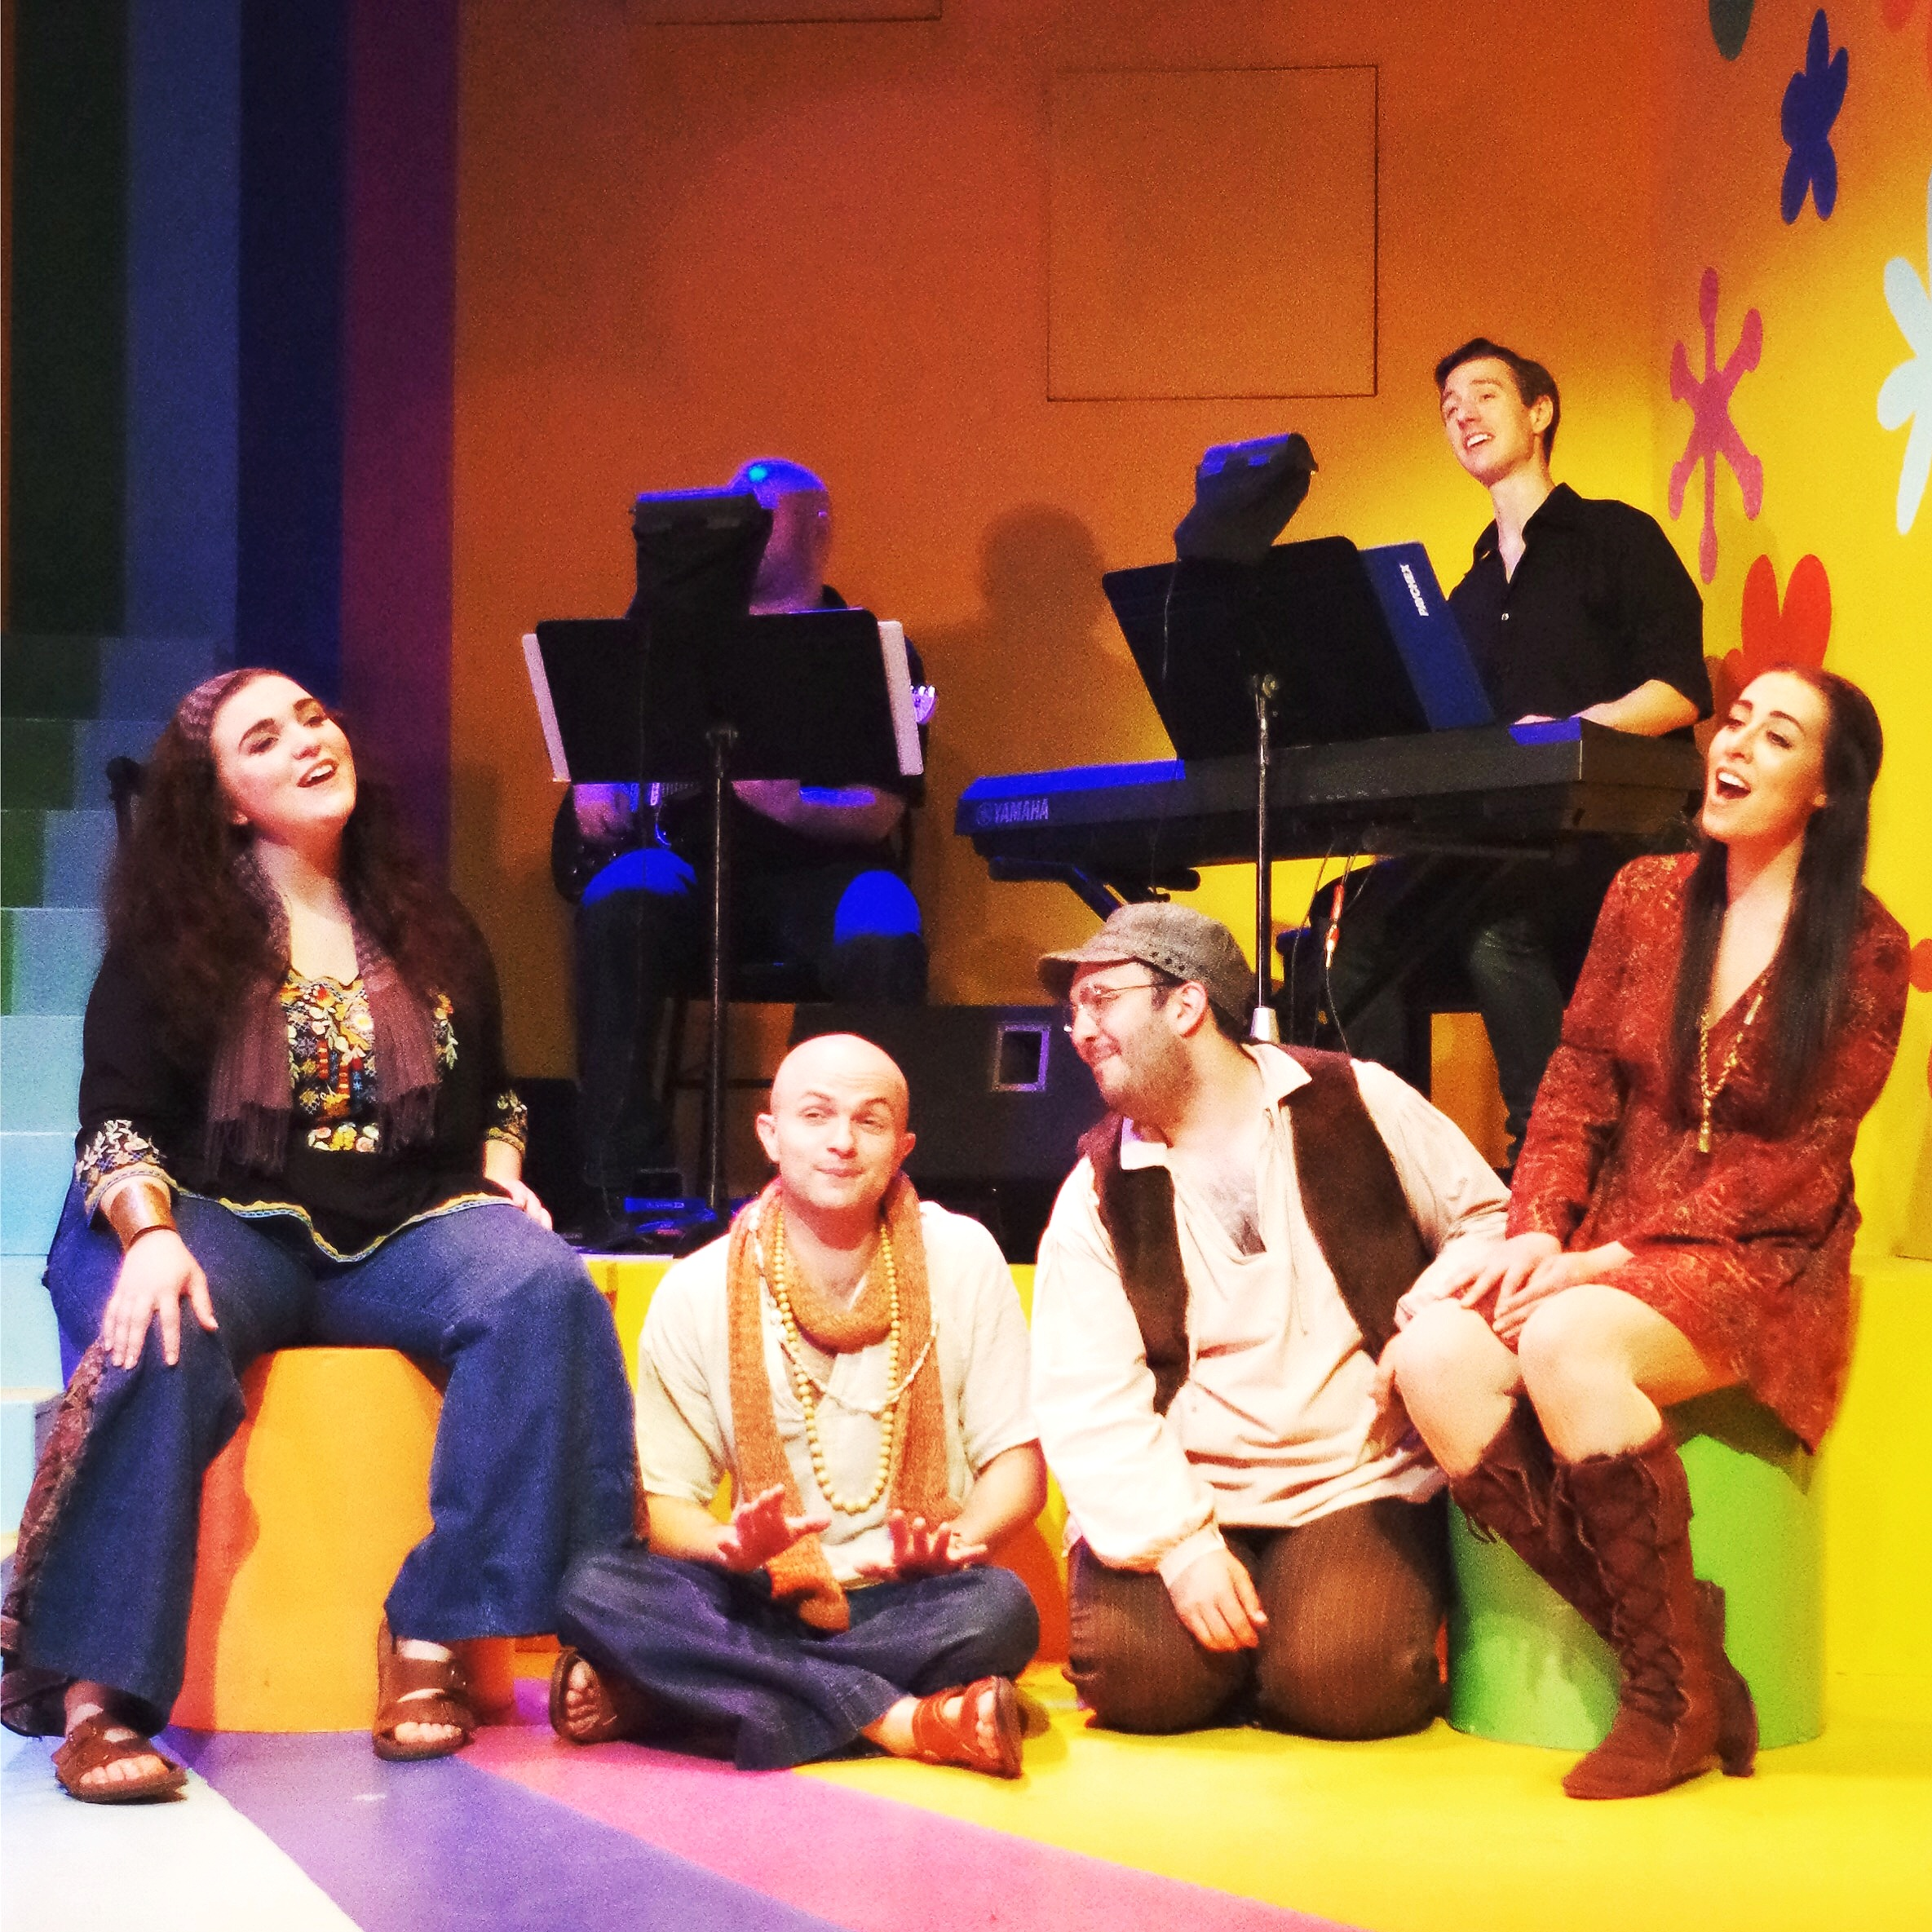 So Happy Together: The Music of the Swingin' 60s  at Bristol Valley Theater (Rich Miller)